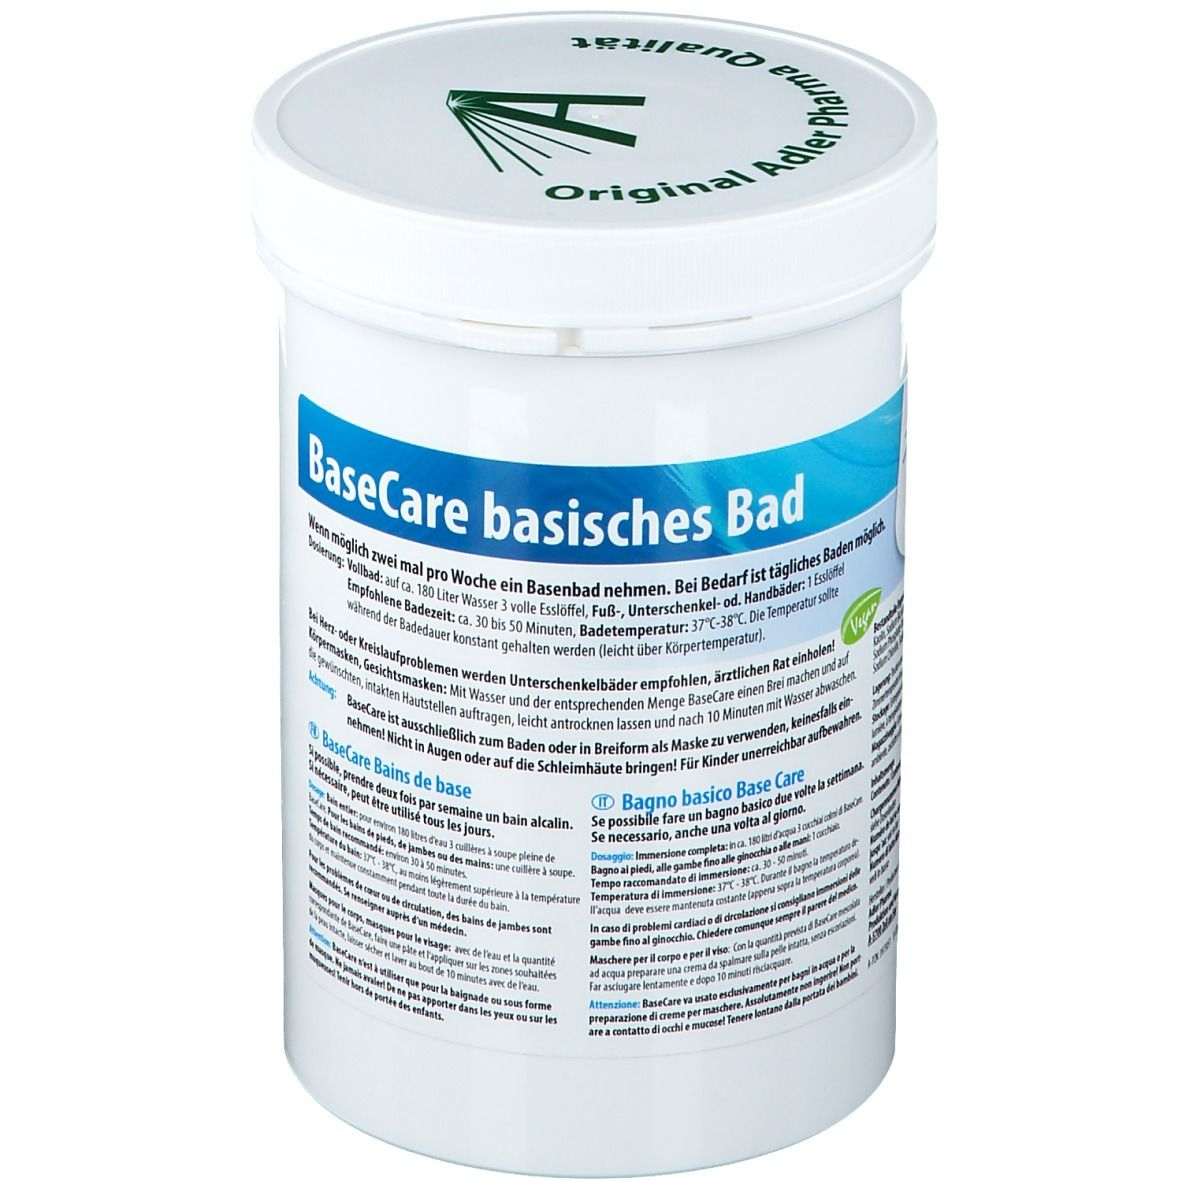 Image of BaseCare basisches Bad